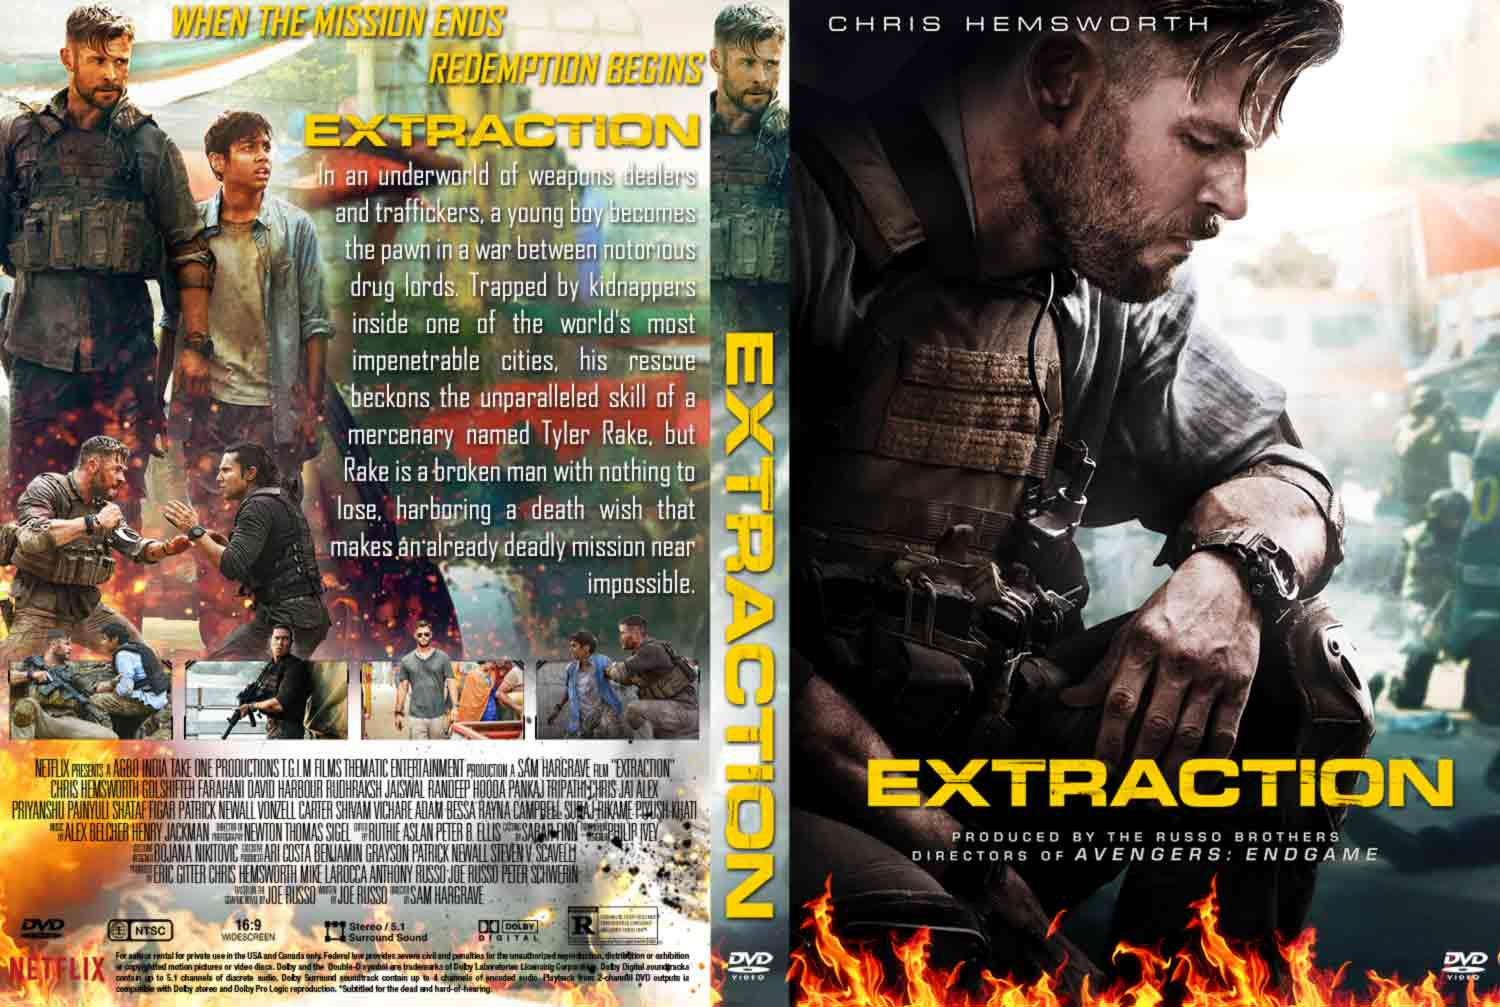 Extraction 2020 Dvd Cover Cover Addict Free Dvd Bluray Covers And Movie Posters